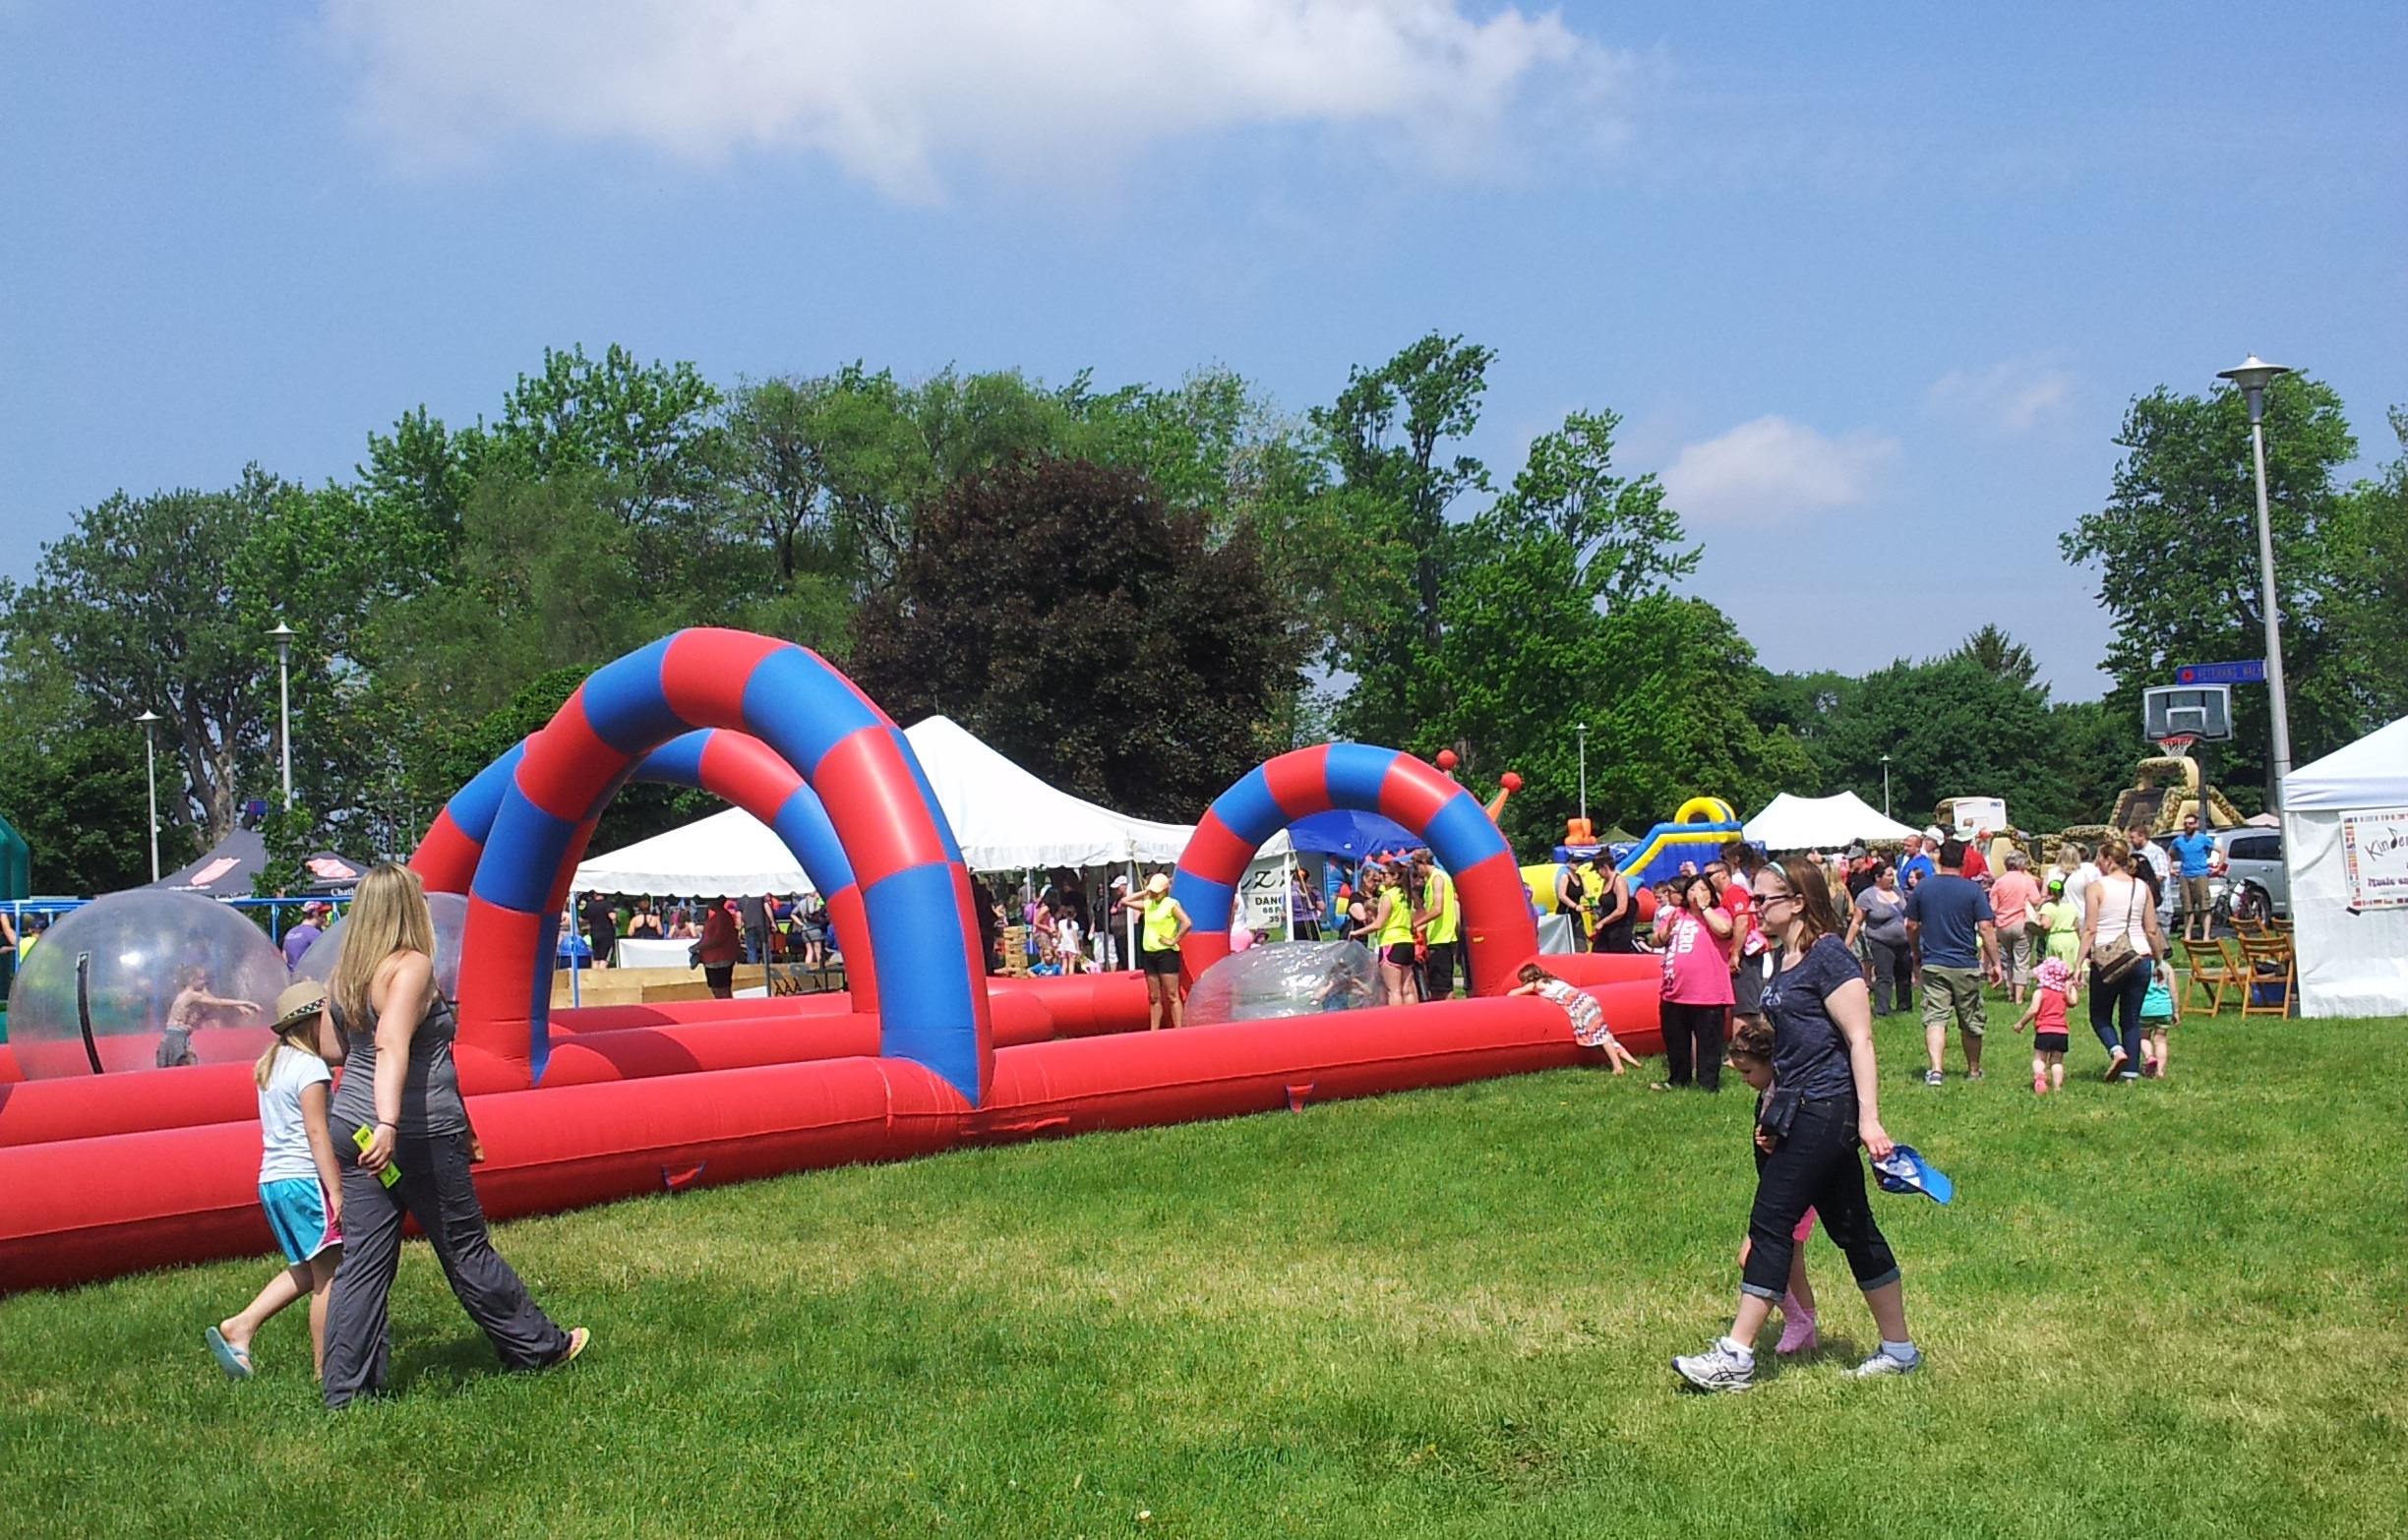 Local residents flock to the CK Youth Festival at Chatham's Tecumseh Park, May 30, 2015. (Photo by Blackburn Radio's Summer Patrol)